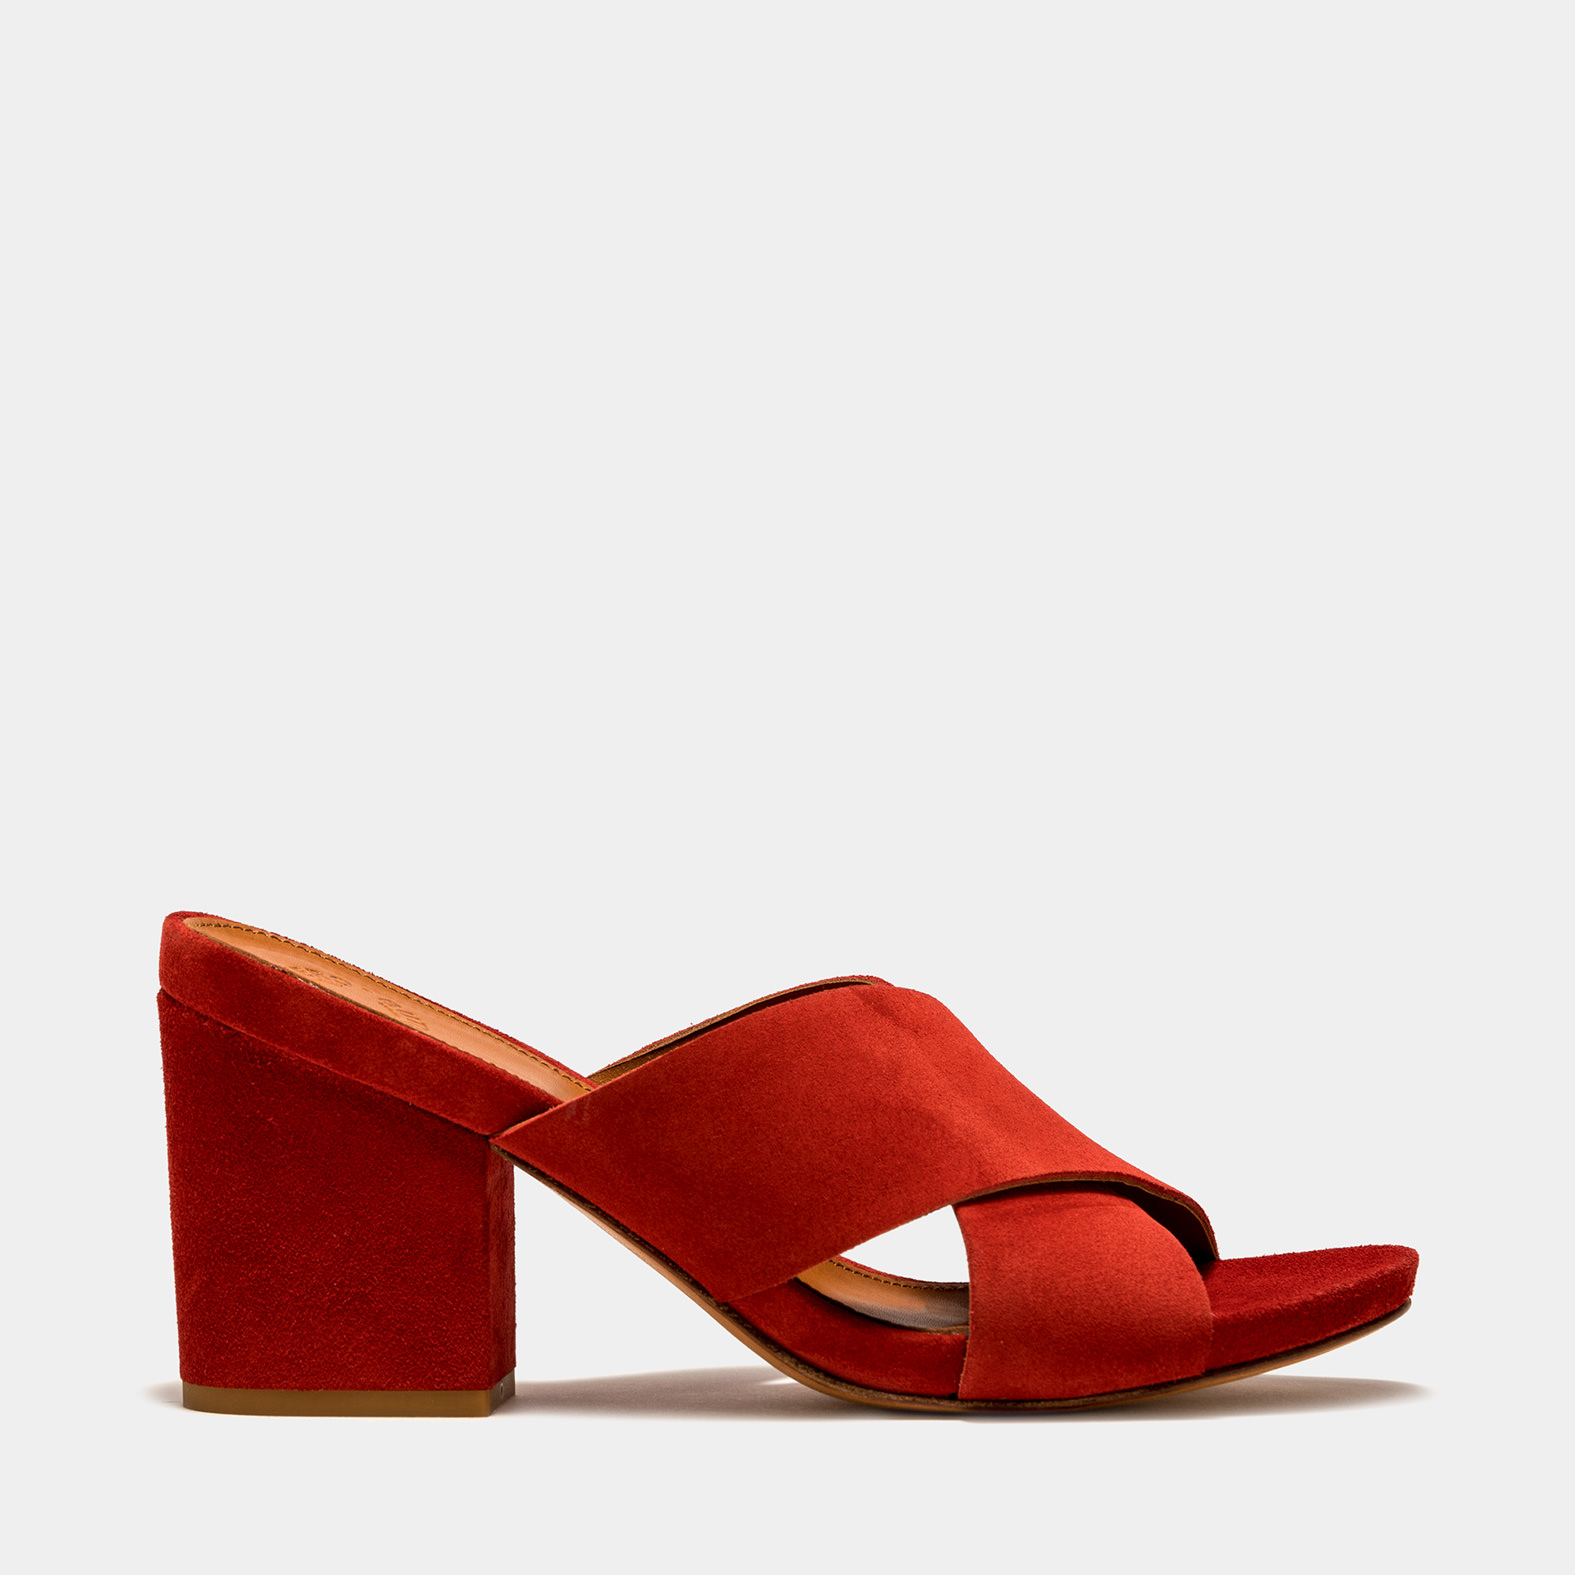 BUTTERO: ALISON SANDALS IN RED SUEDE